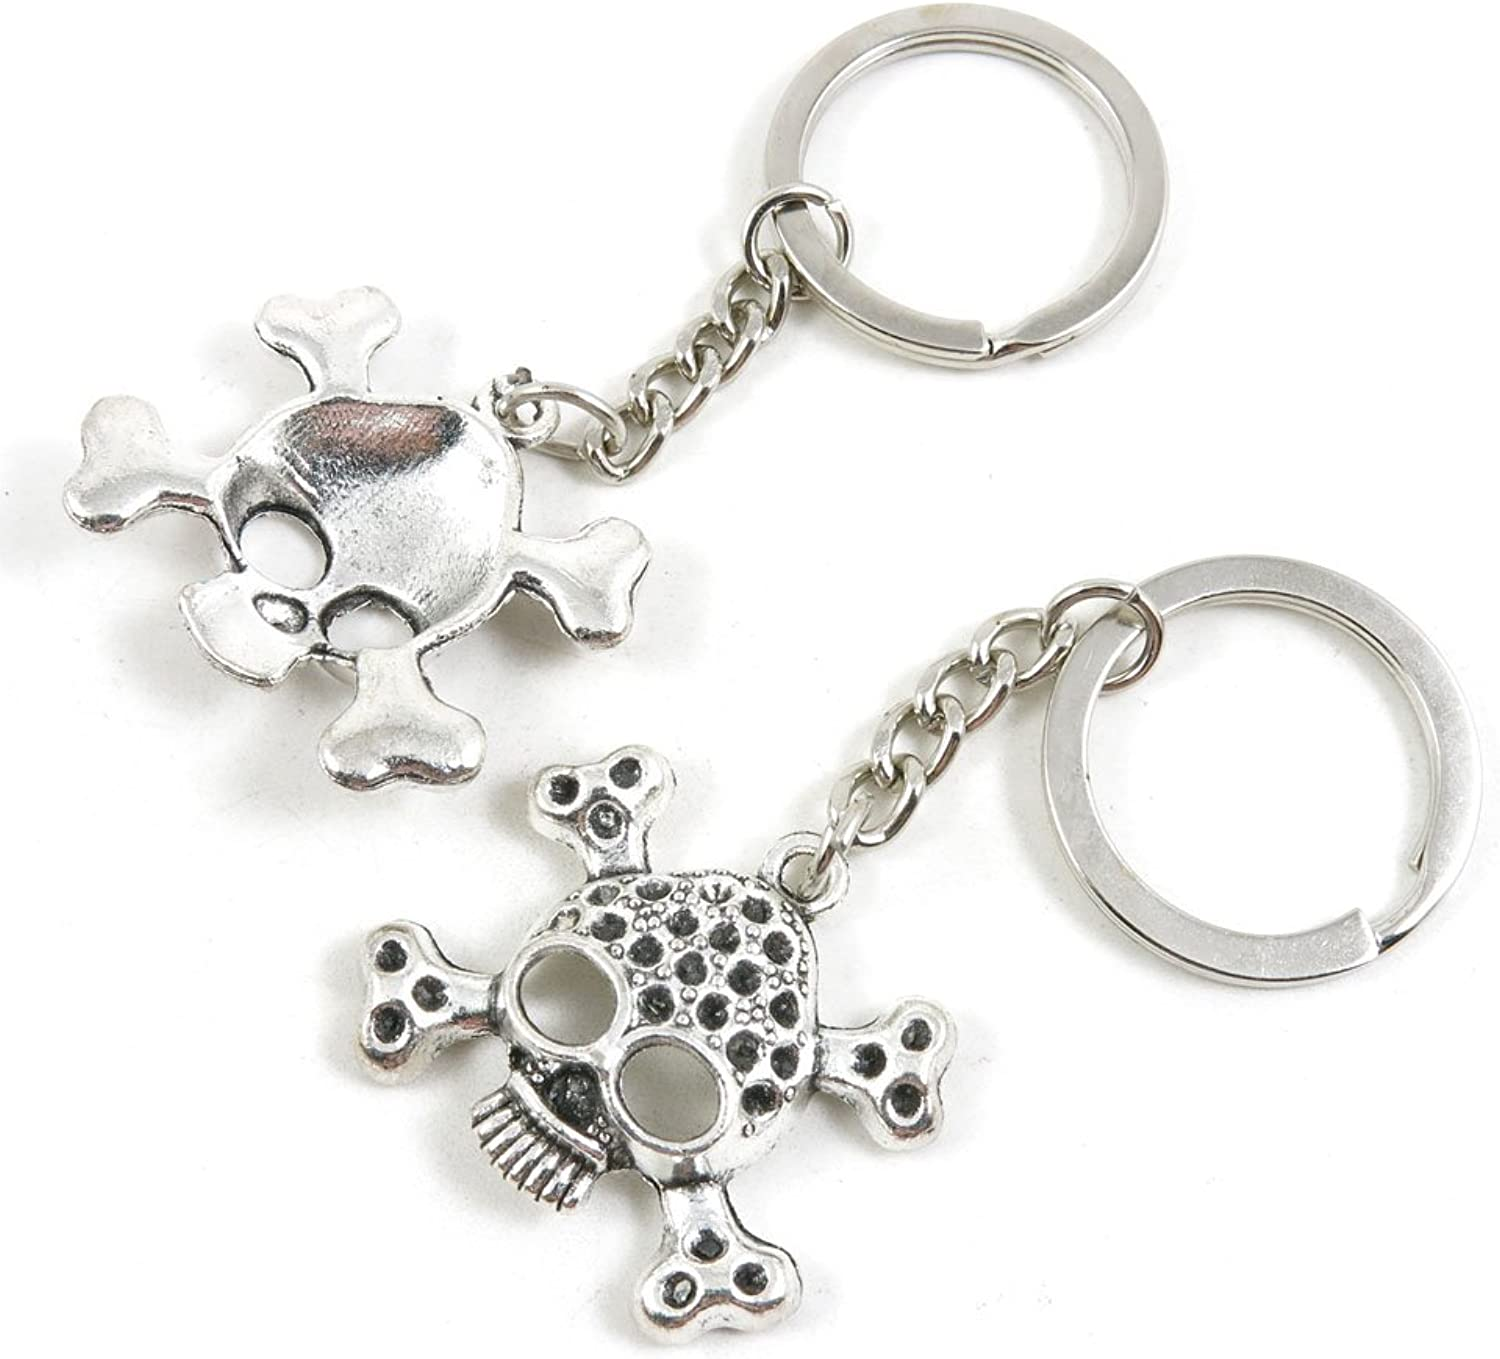 100 Pieces Keychain Keyring Door Car Key Chain Ring Tag Charms Bulk Supply Jewelry Making Clasp Findings V2YE5D Skull